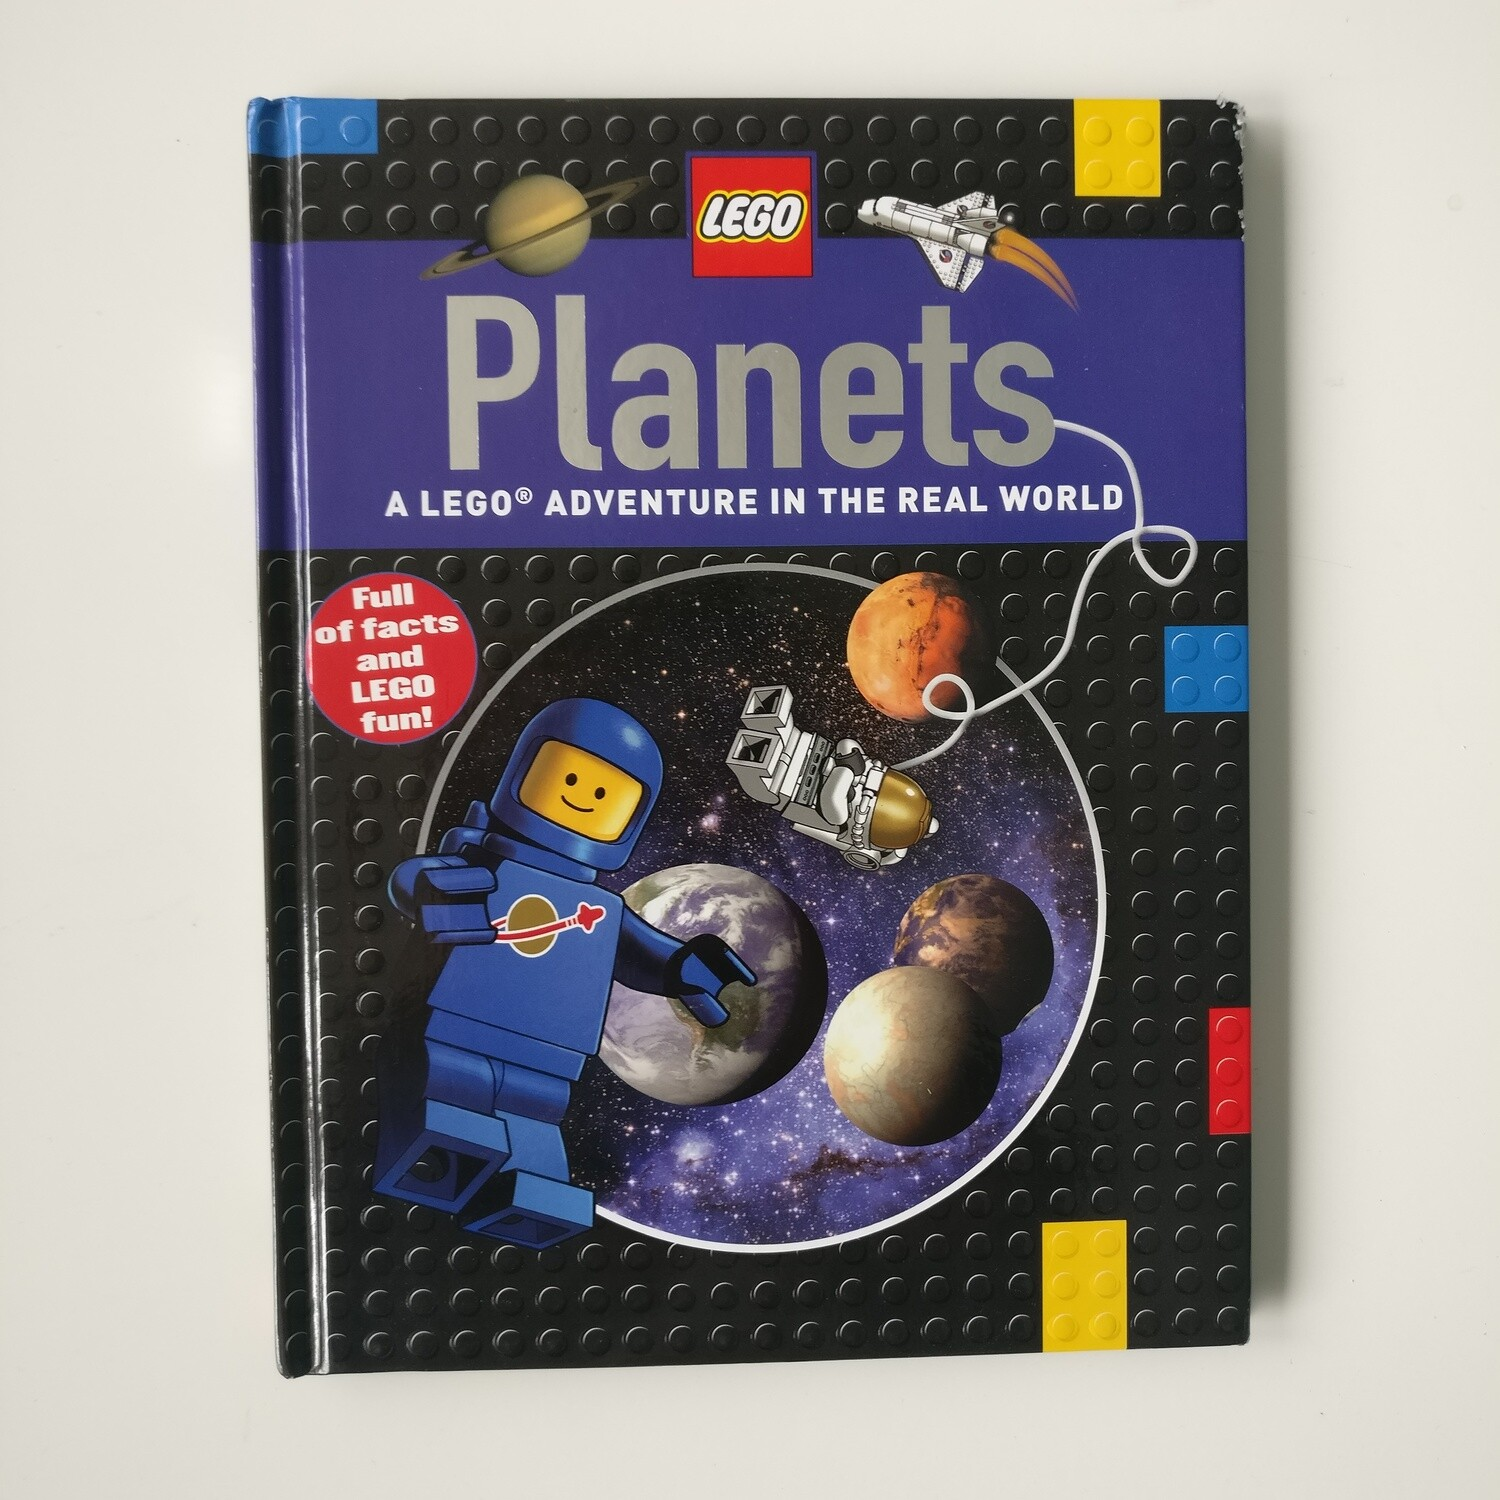 Planets Lego Notebook - Space